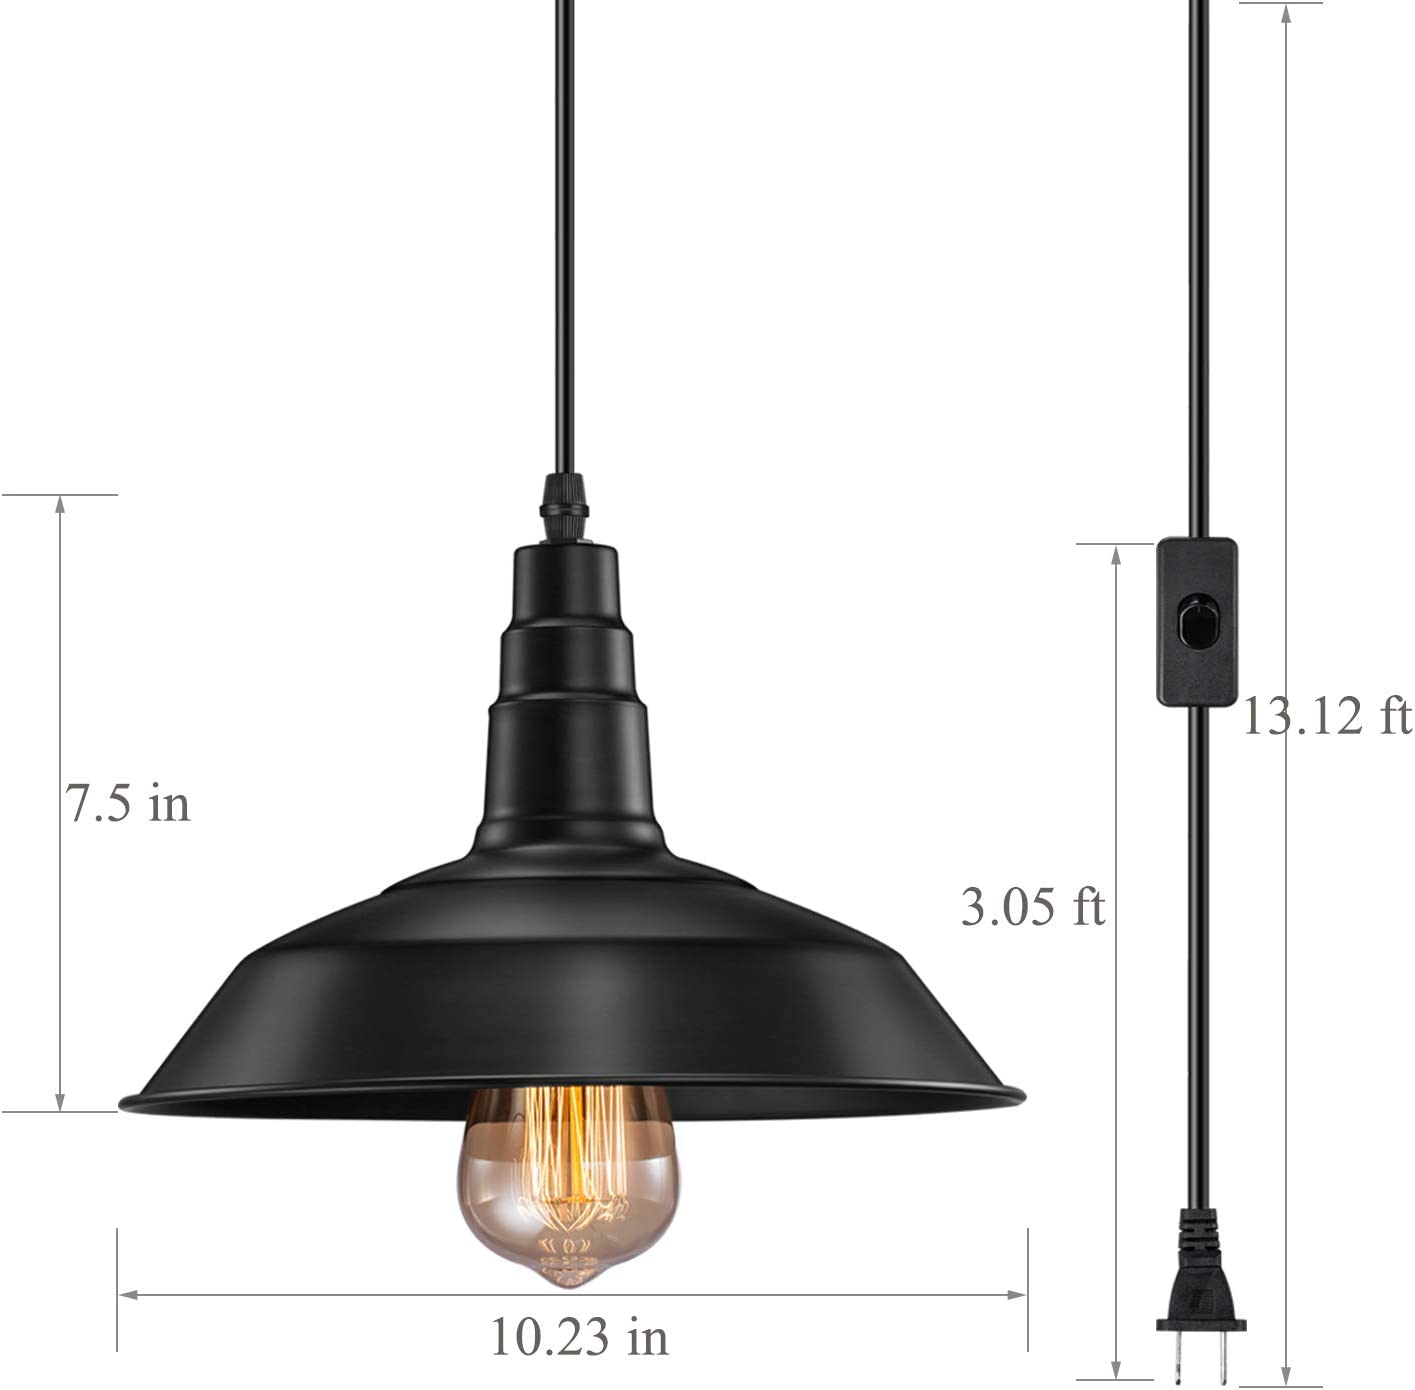 ET2 E21205-10PC Sense 5-Light Single Pendant, Polished Chrome Finish, Mirror Chrome Glass, G9 Xenon Bulb, 40W Max., Dry Safety Rated, 2900K Color Temp., Low-Voltage Dimmable, Glass Shade Material, 5250 Rated Lumens